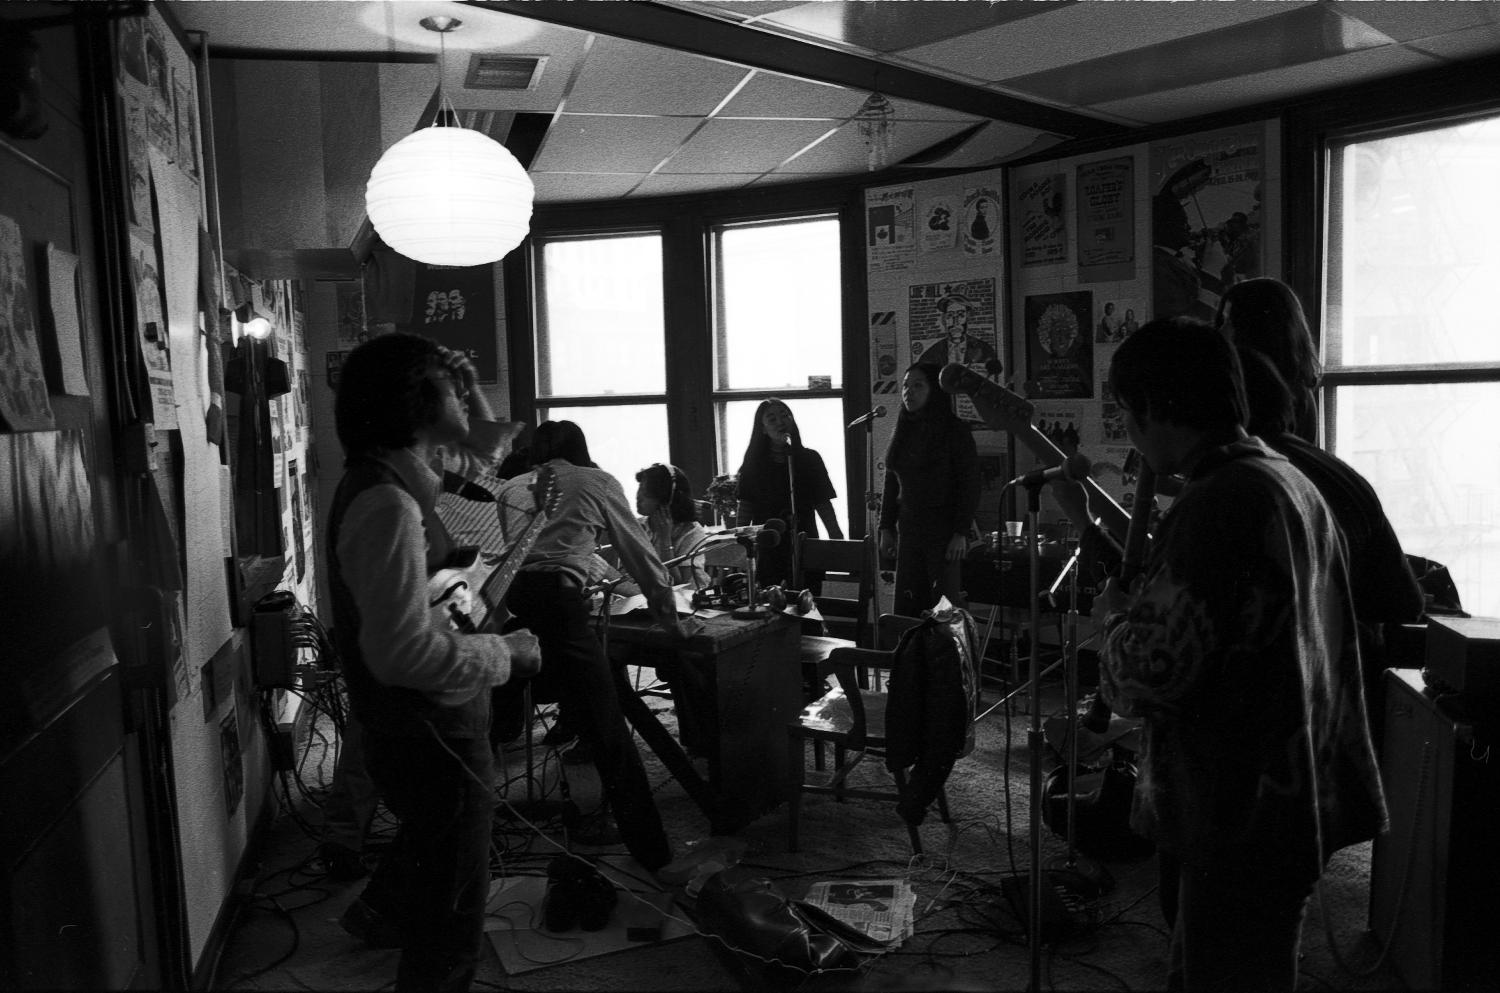 Vancouver-based activist band Kokuho Rose Prohibited performing during a marathon weekend at Vancouver Co-op Radio, May 1978. Photographer:  Paul Yee. Reference code AM1523-S6-F14-: 2008-010.1087.